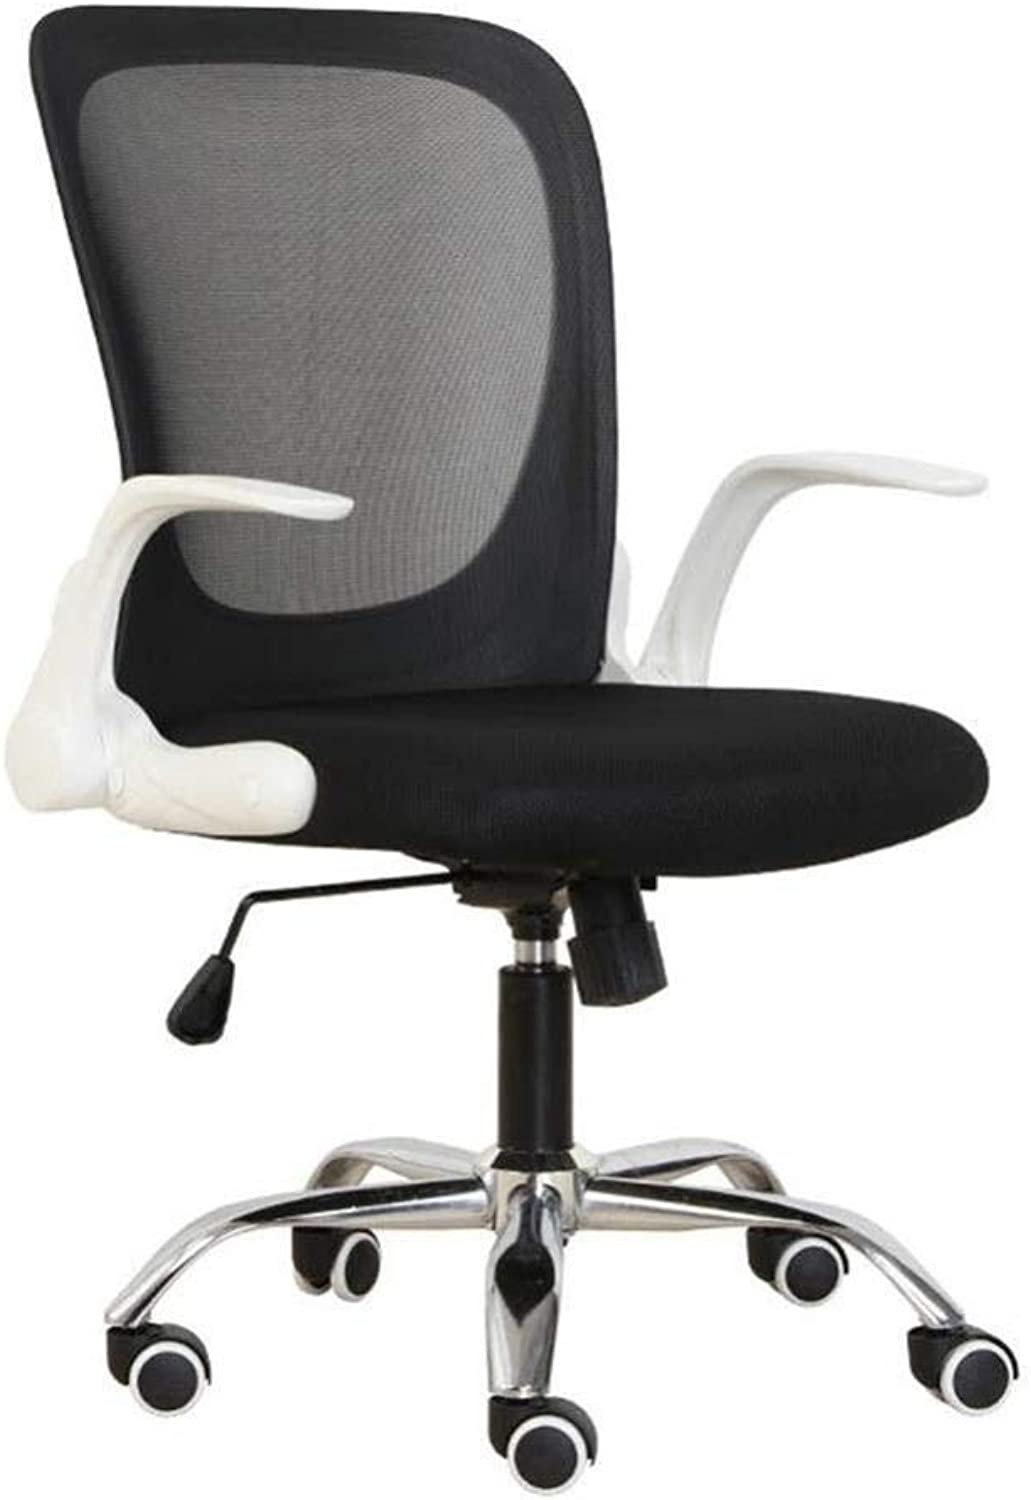 Office Chair Computer Chair Home Office with Wheel Lift Armrest ( color   A )